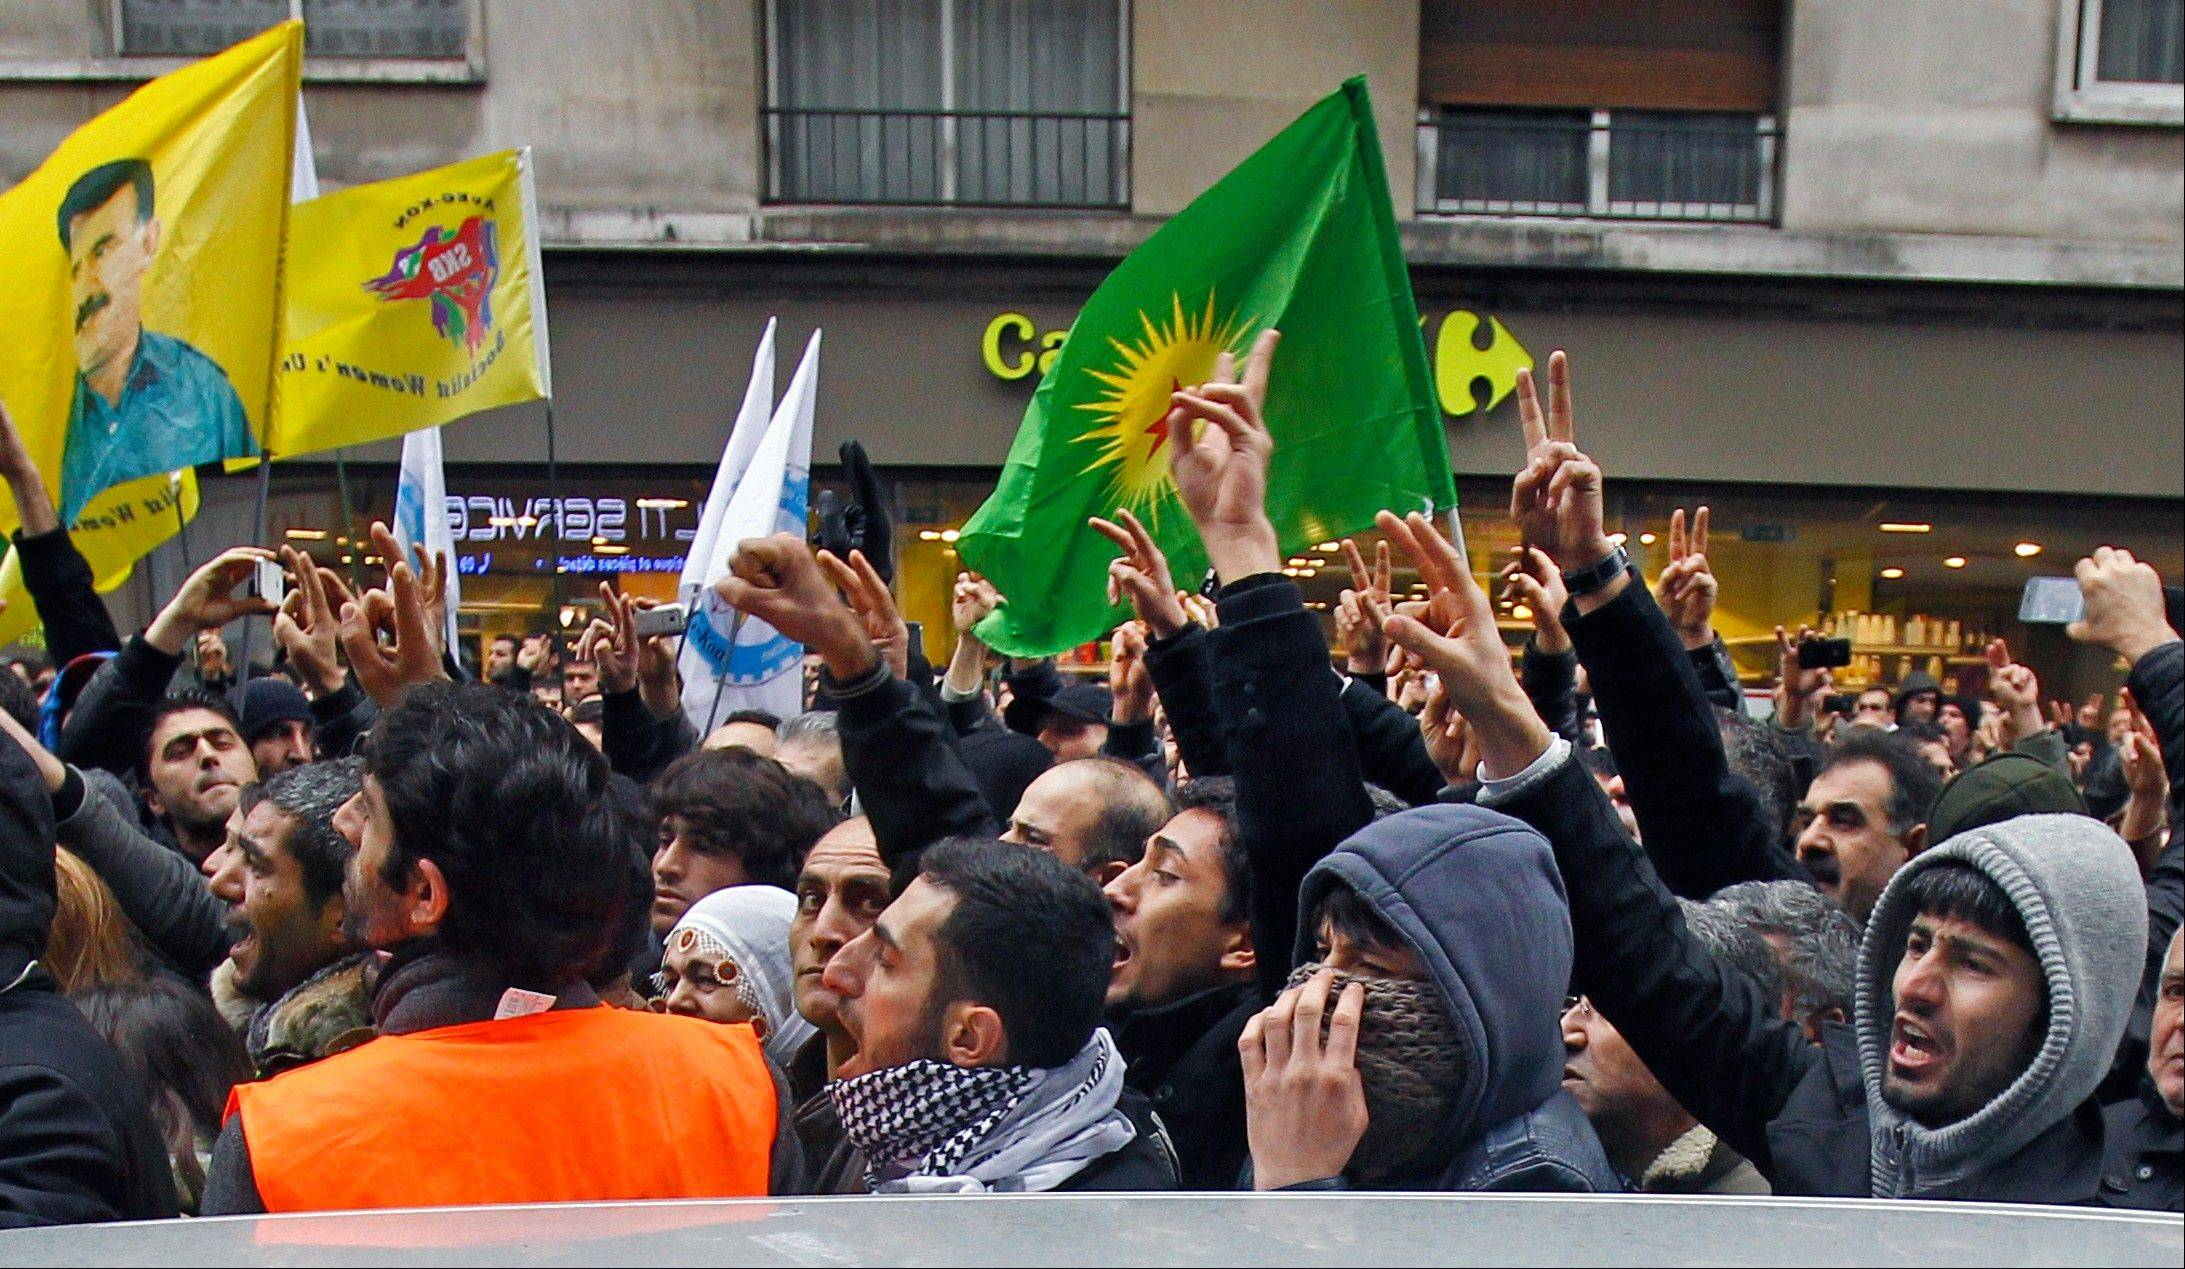 Kurdish people react as three bodies of the killed Kurdish women are taken out of the building in Paris, Thursday Jan. 10, 2012. Police say three Kurdish women have been shot dead at a pro-Kurdish center in Paris in what the French interior minister is calling an execution.